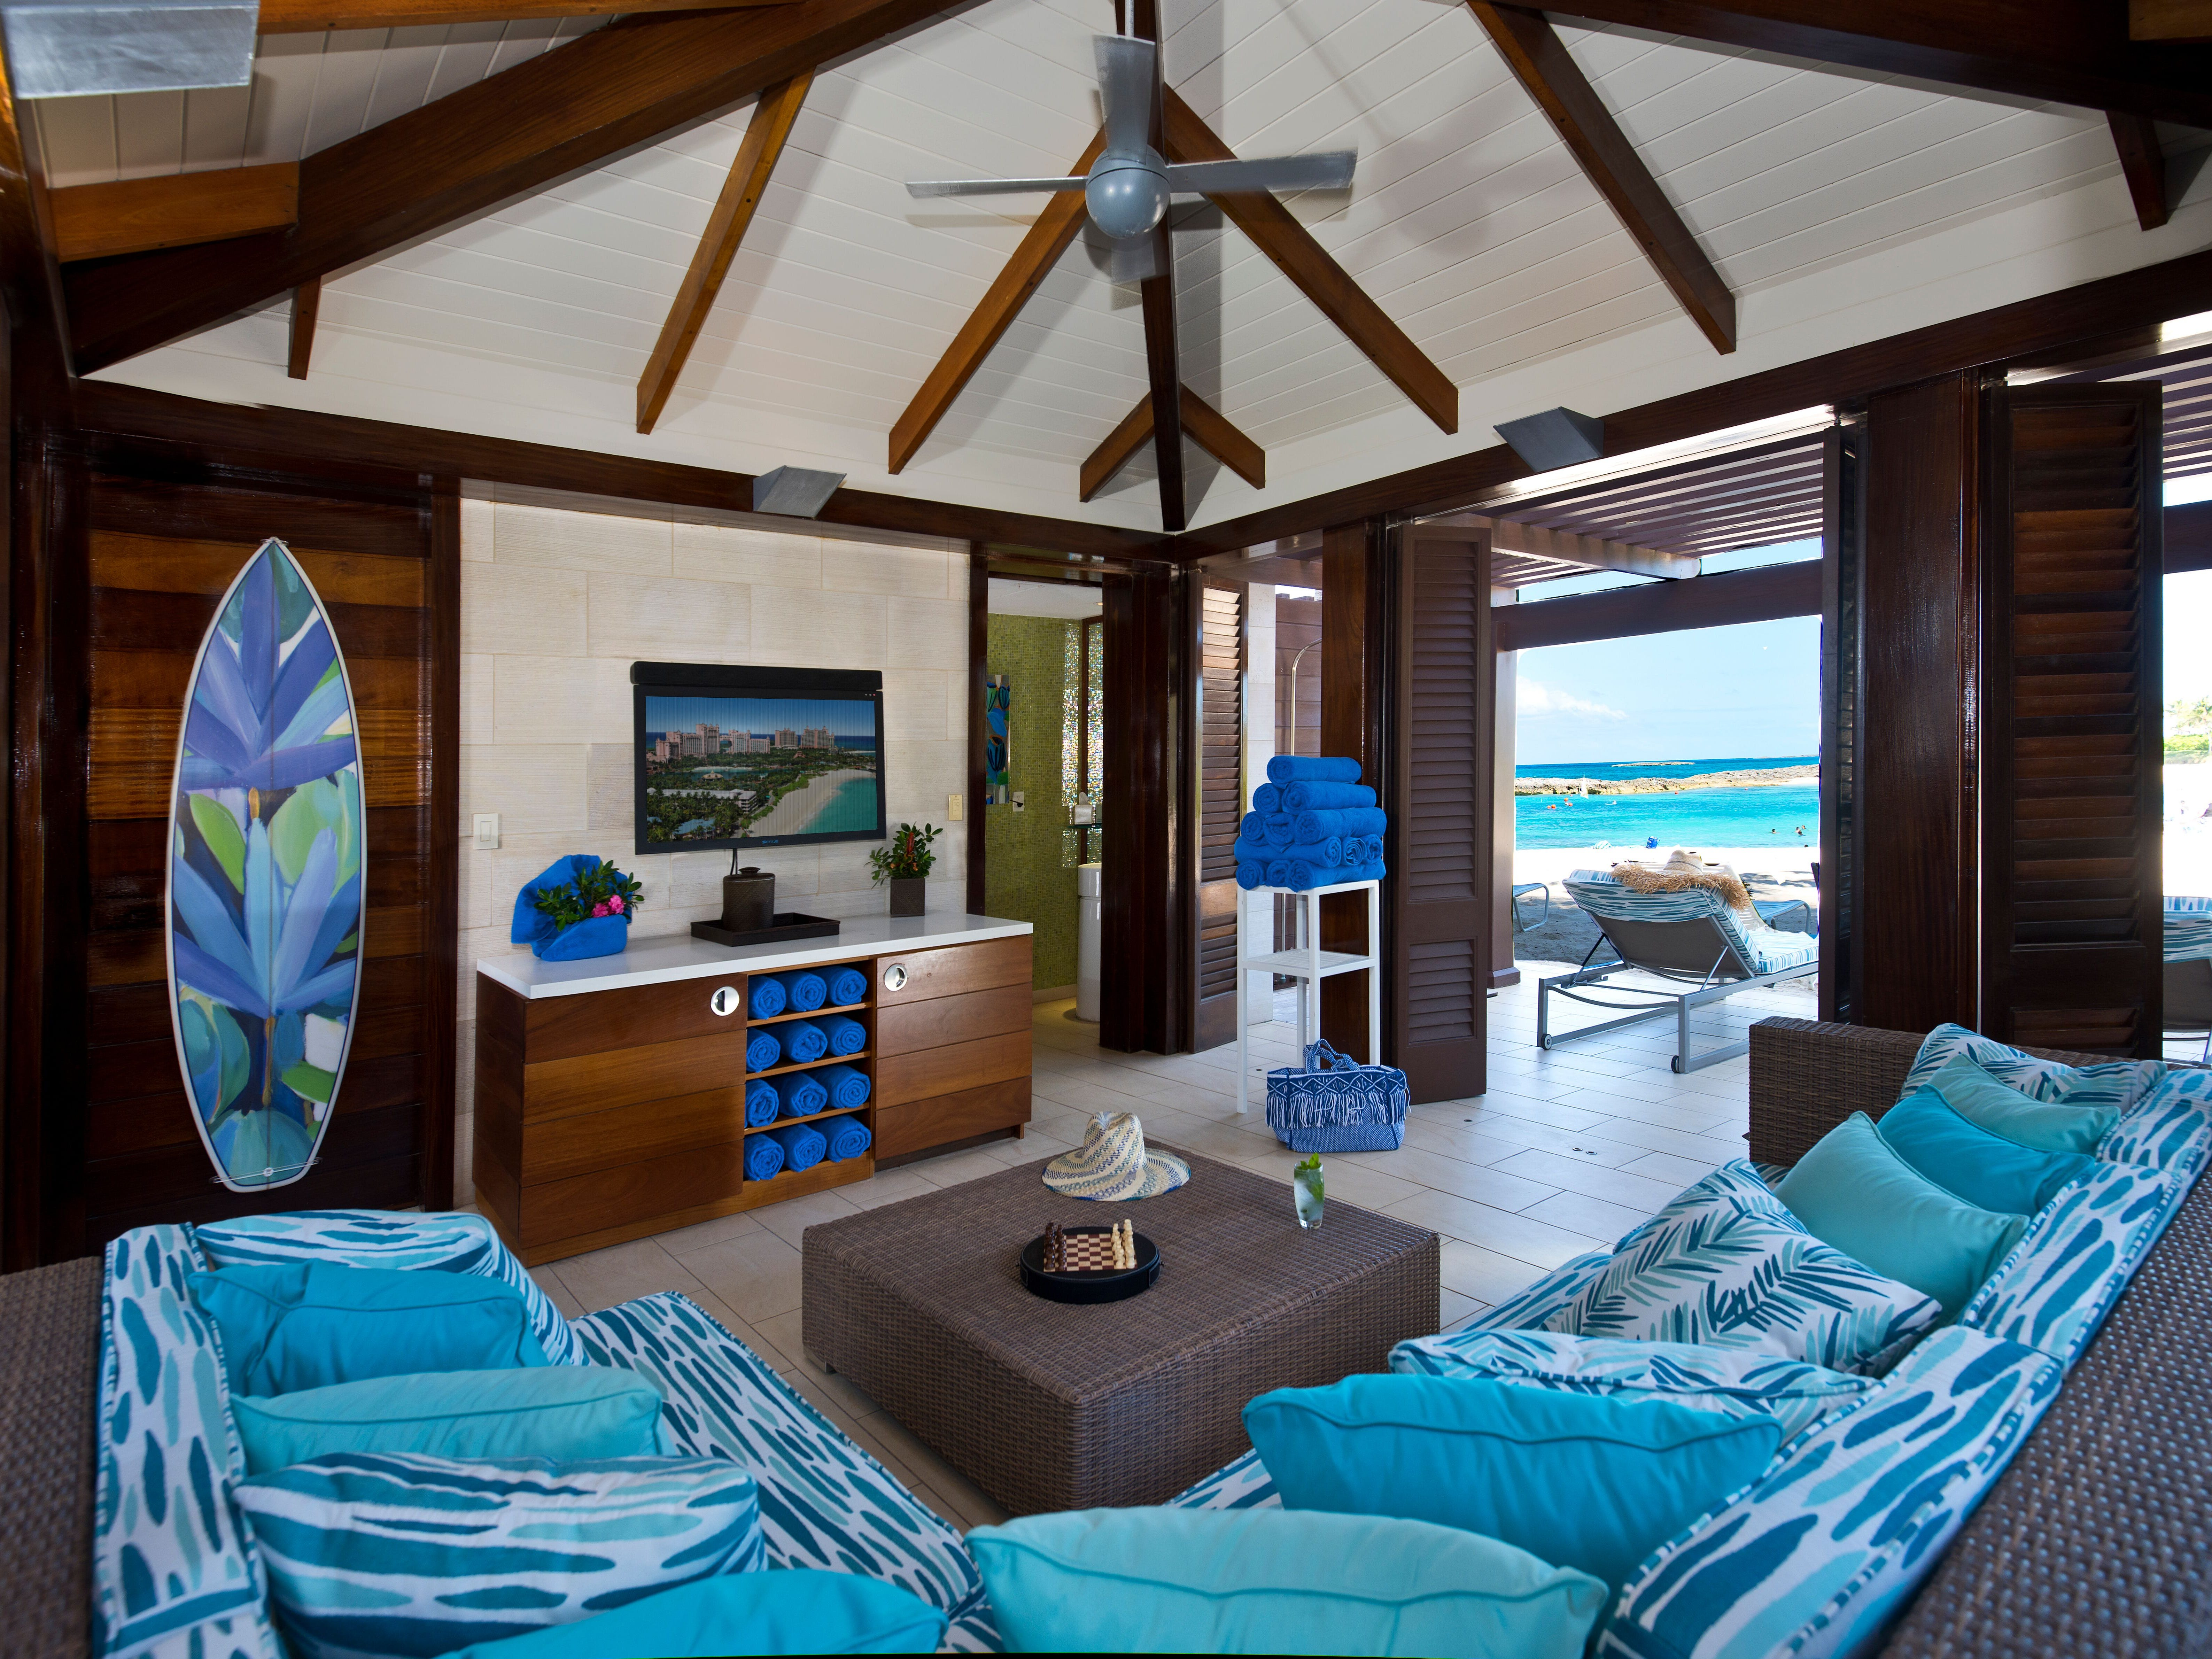 The cabanas at The Cove Pool & Beach come with a butler, flat-screen TV and on-demand spa treatments, and even have a bathroom. The going rate for a day: $800 on weekdays and $1,000 on weekends.